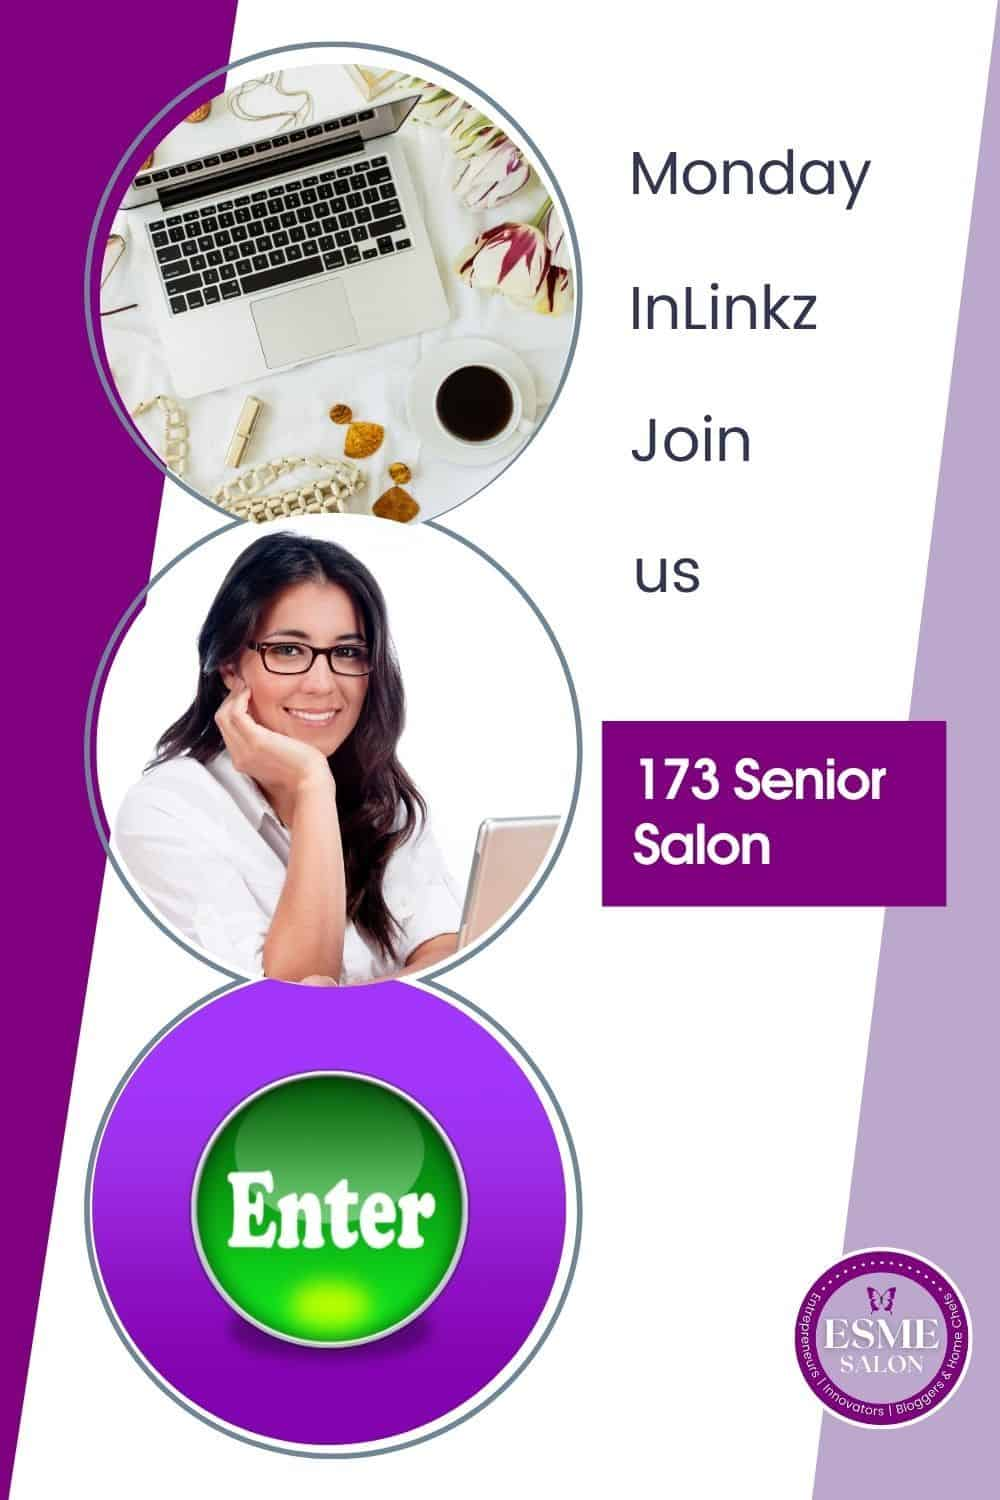 Laptop and lady that will enter at 173 Senior Salno